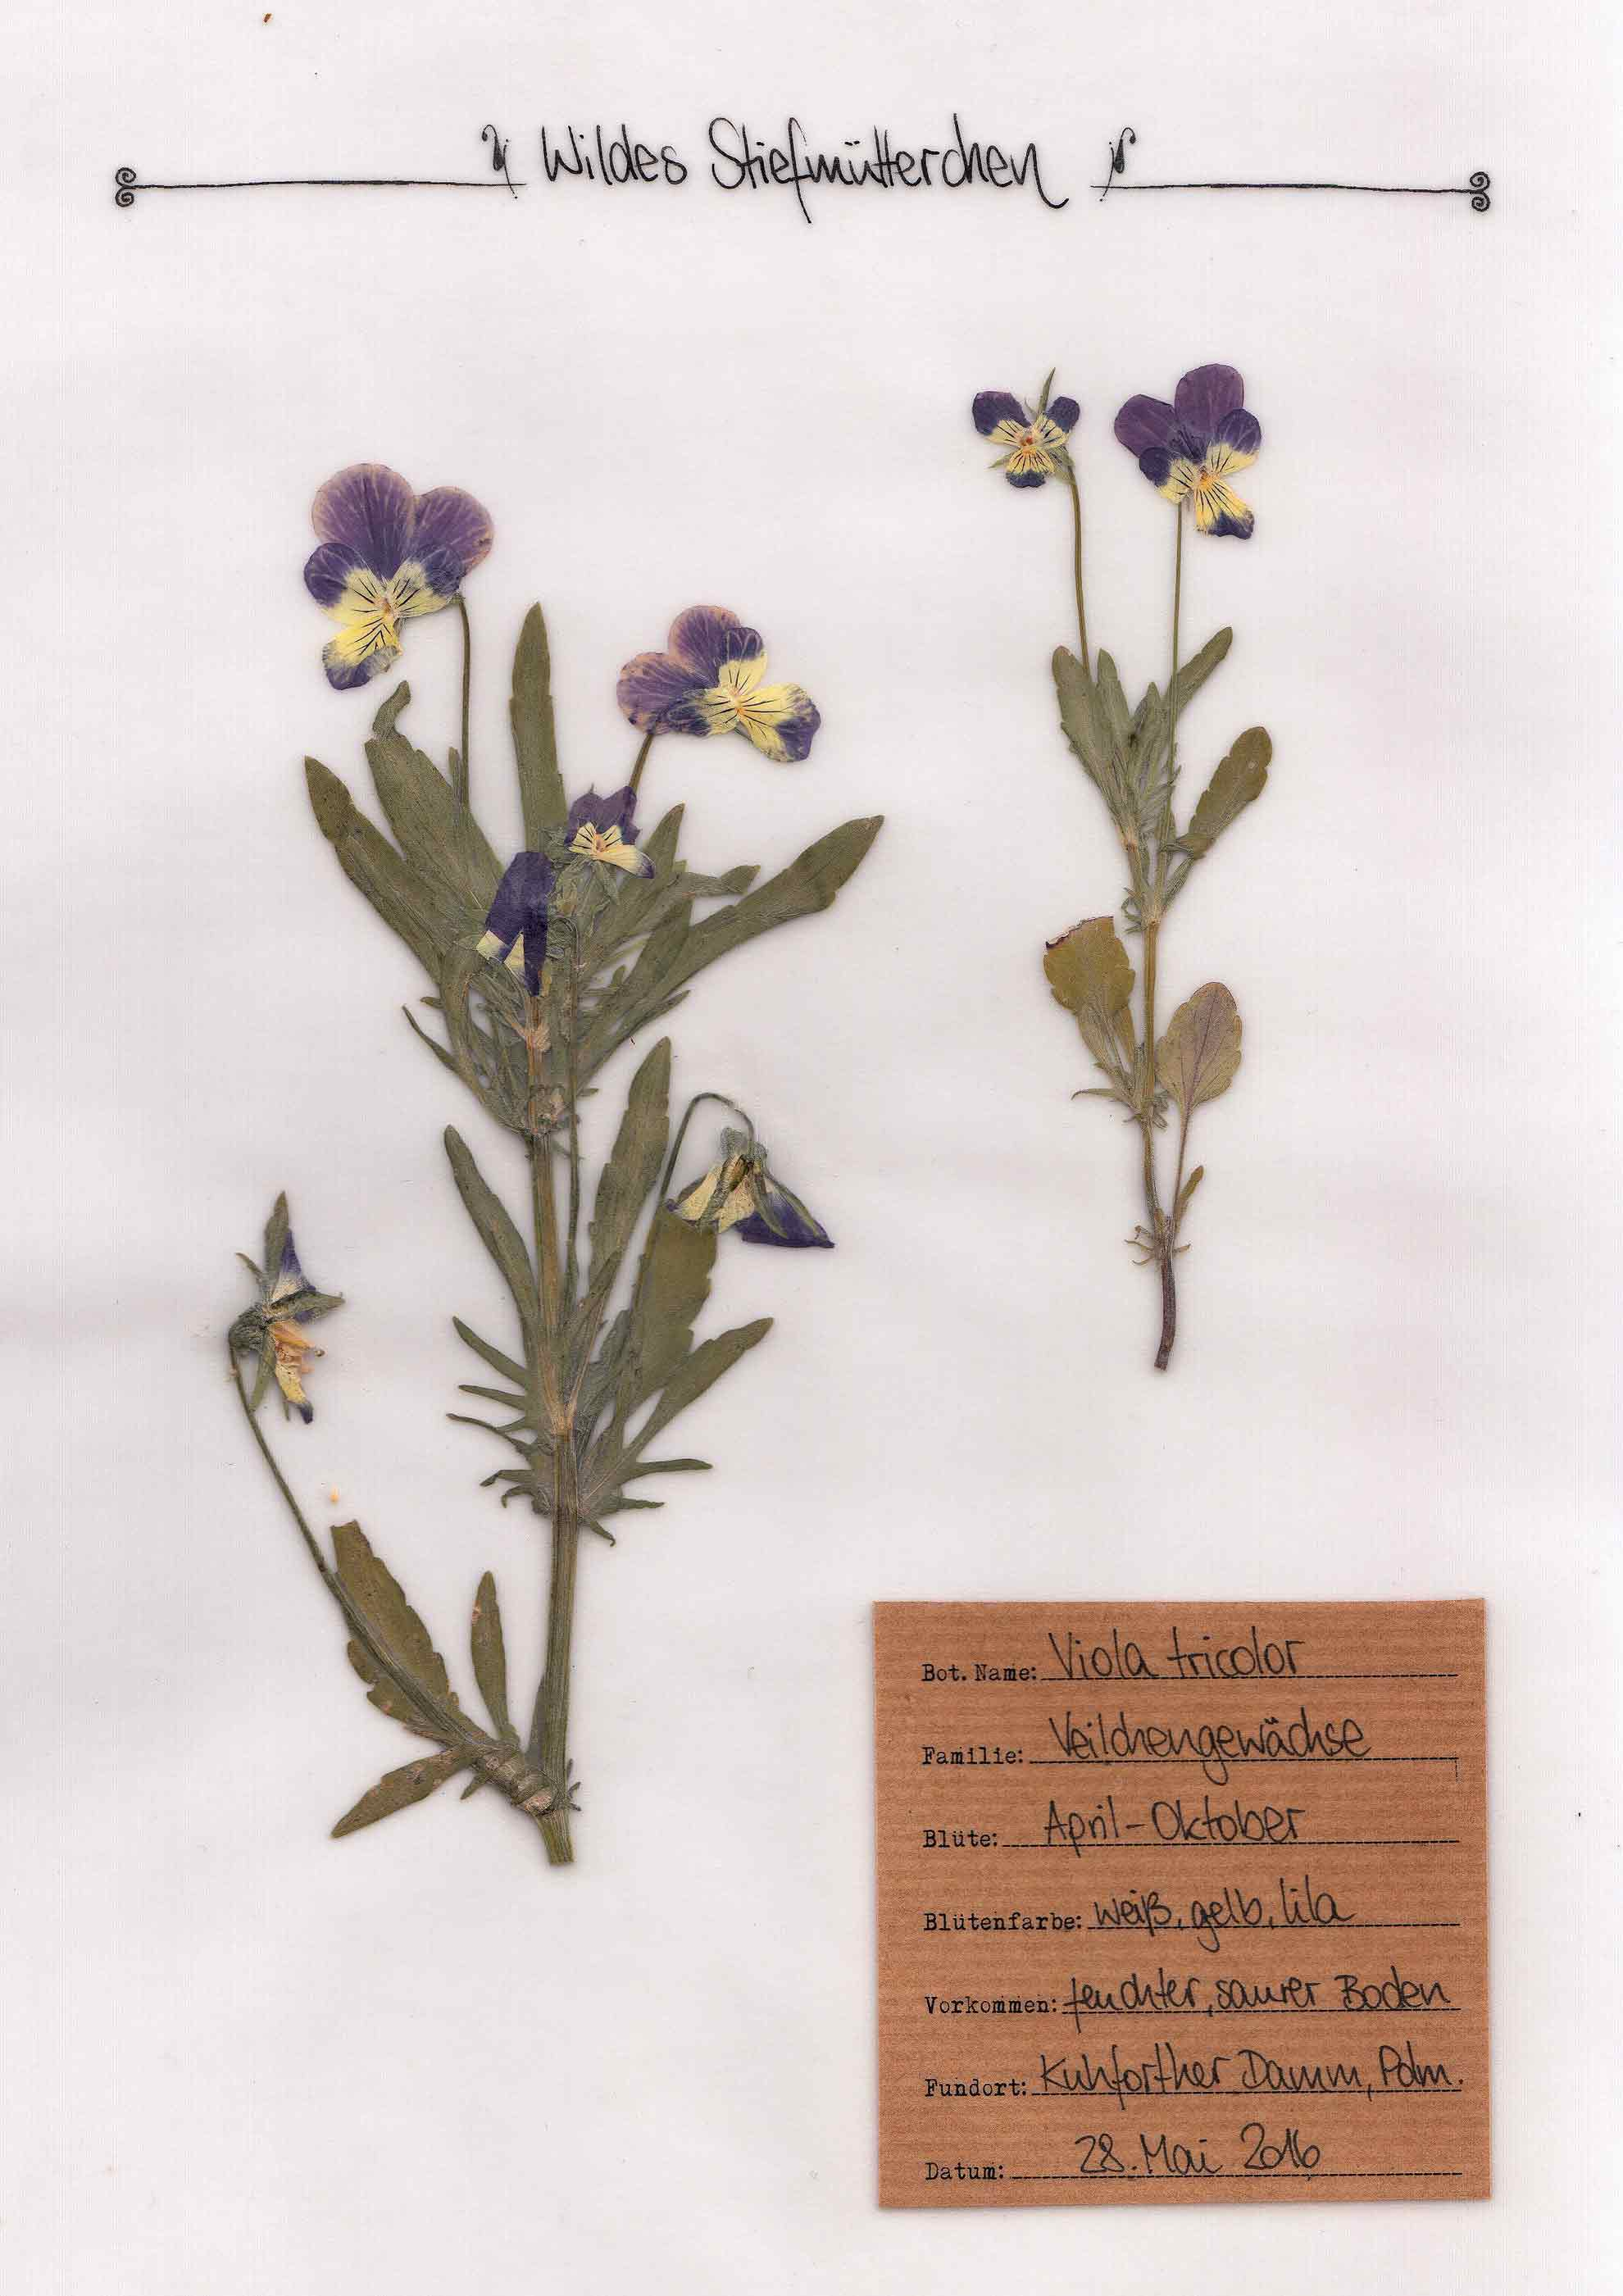 Wildes Stiefmütterchen Herbal Hunter Pflanzenportrait im digitalem Herbarium